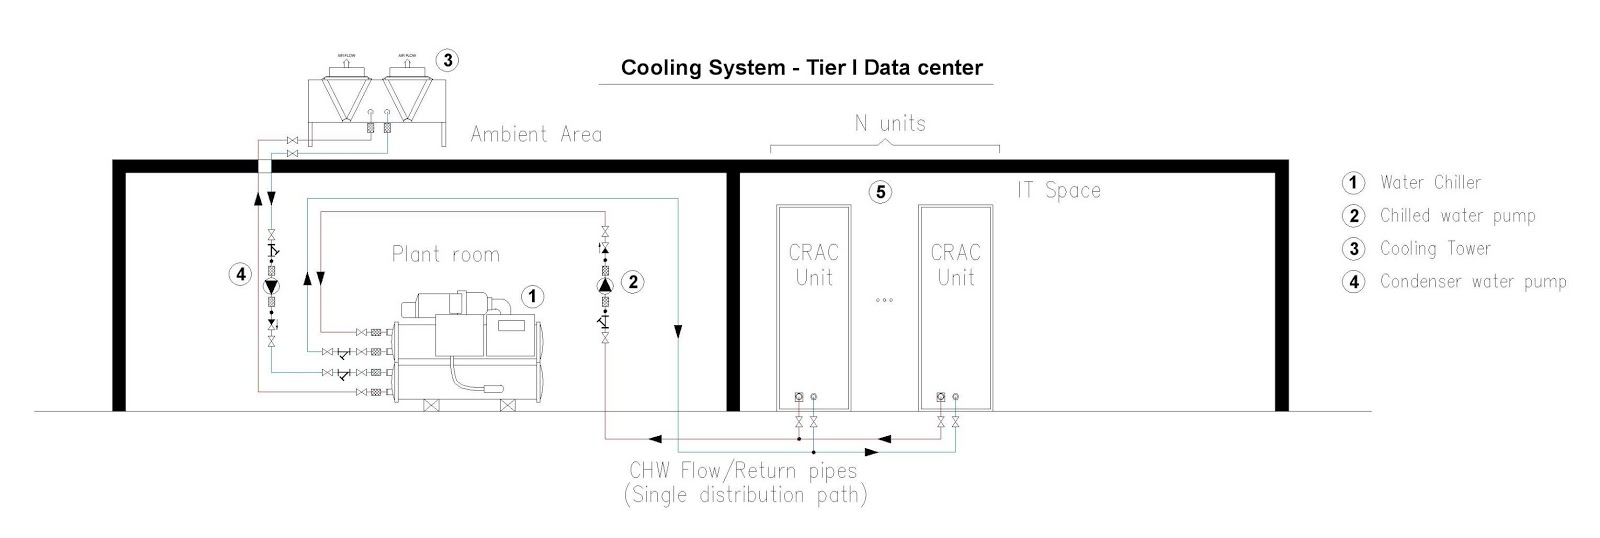 medium resolution of 02 a tier i water system crac unit contain single or more running capacity components this includes a combination of water chiller cooling tower